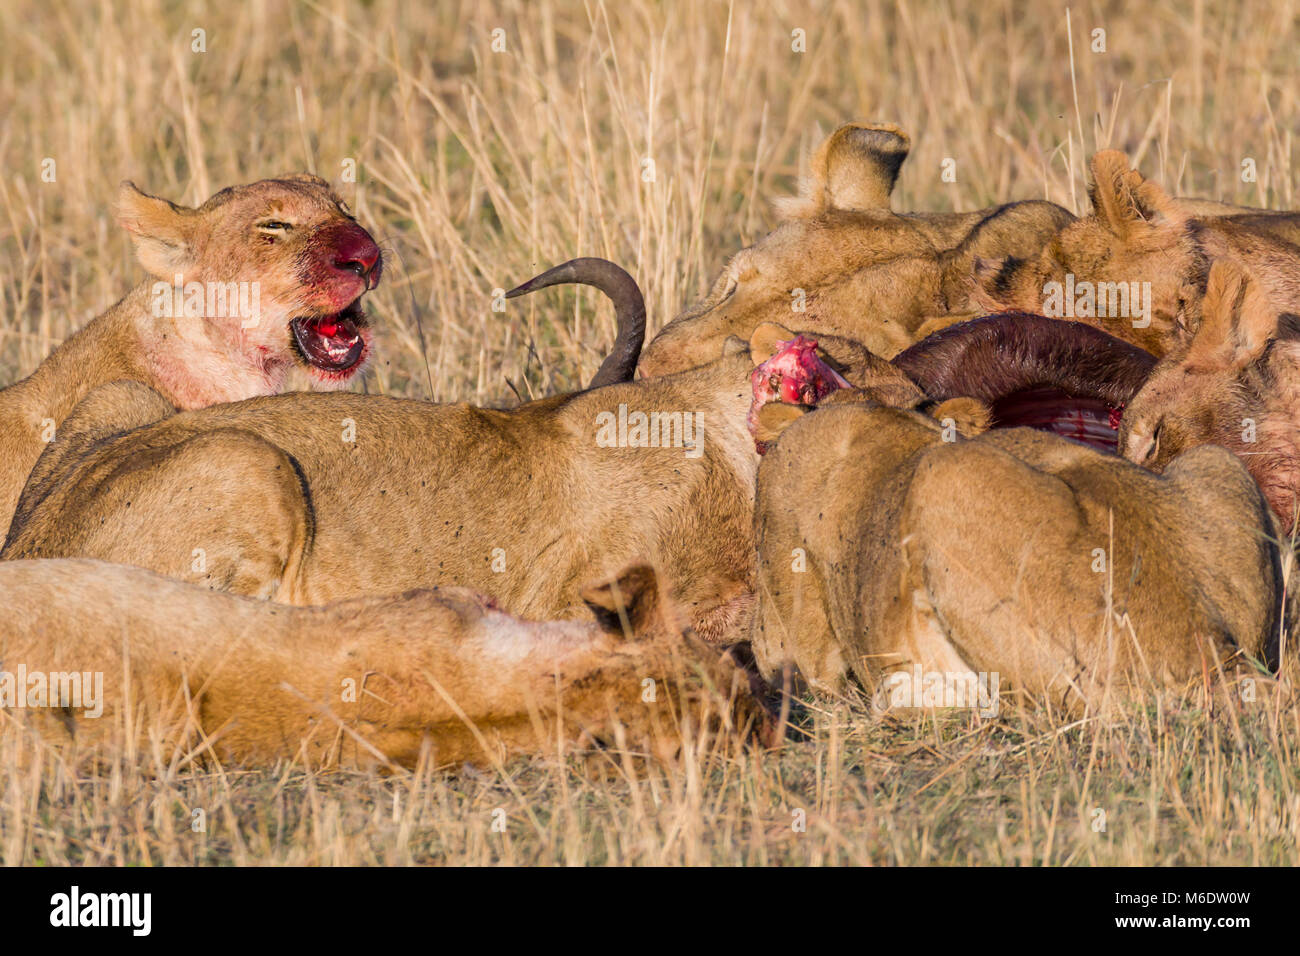 Pride of lions feeding on prey (wildebeest) in savanna, enjoying fresh meat, blood and flies is all over theirs Stock Photo